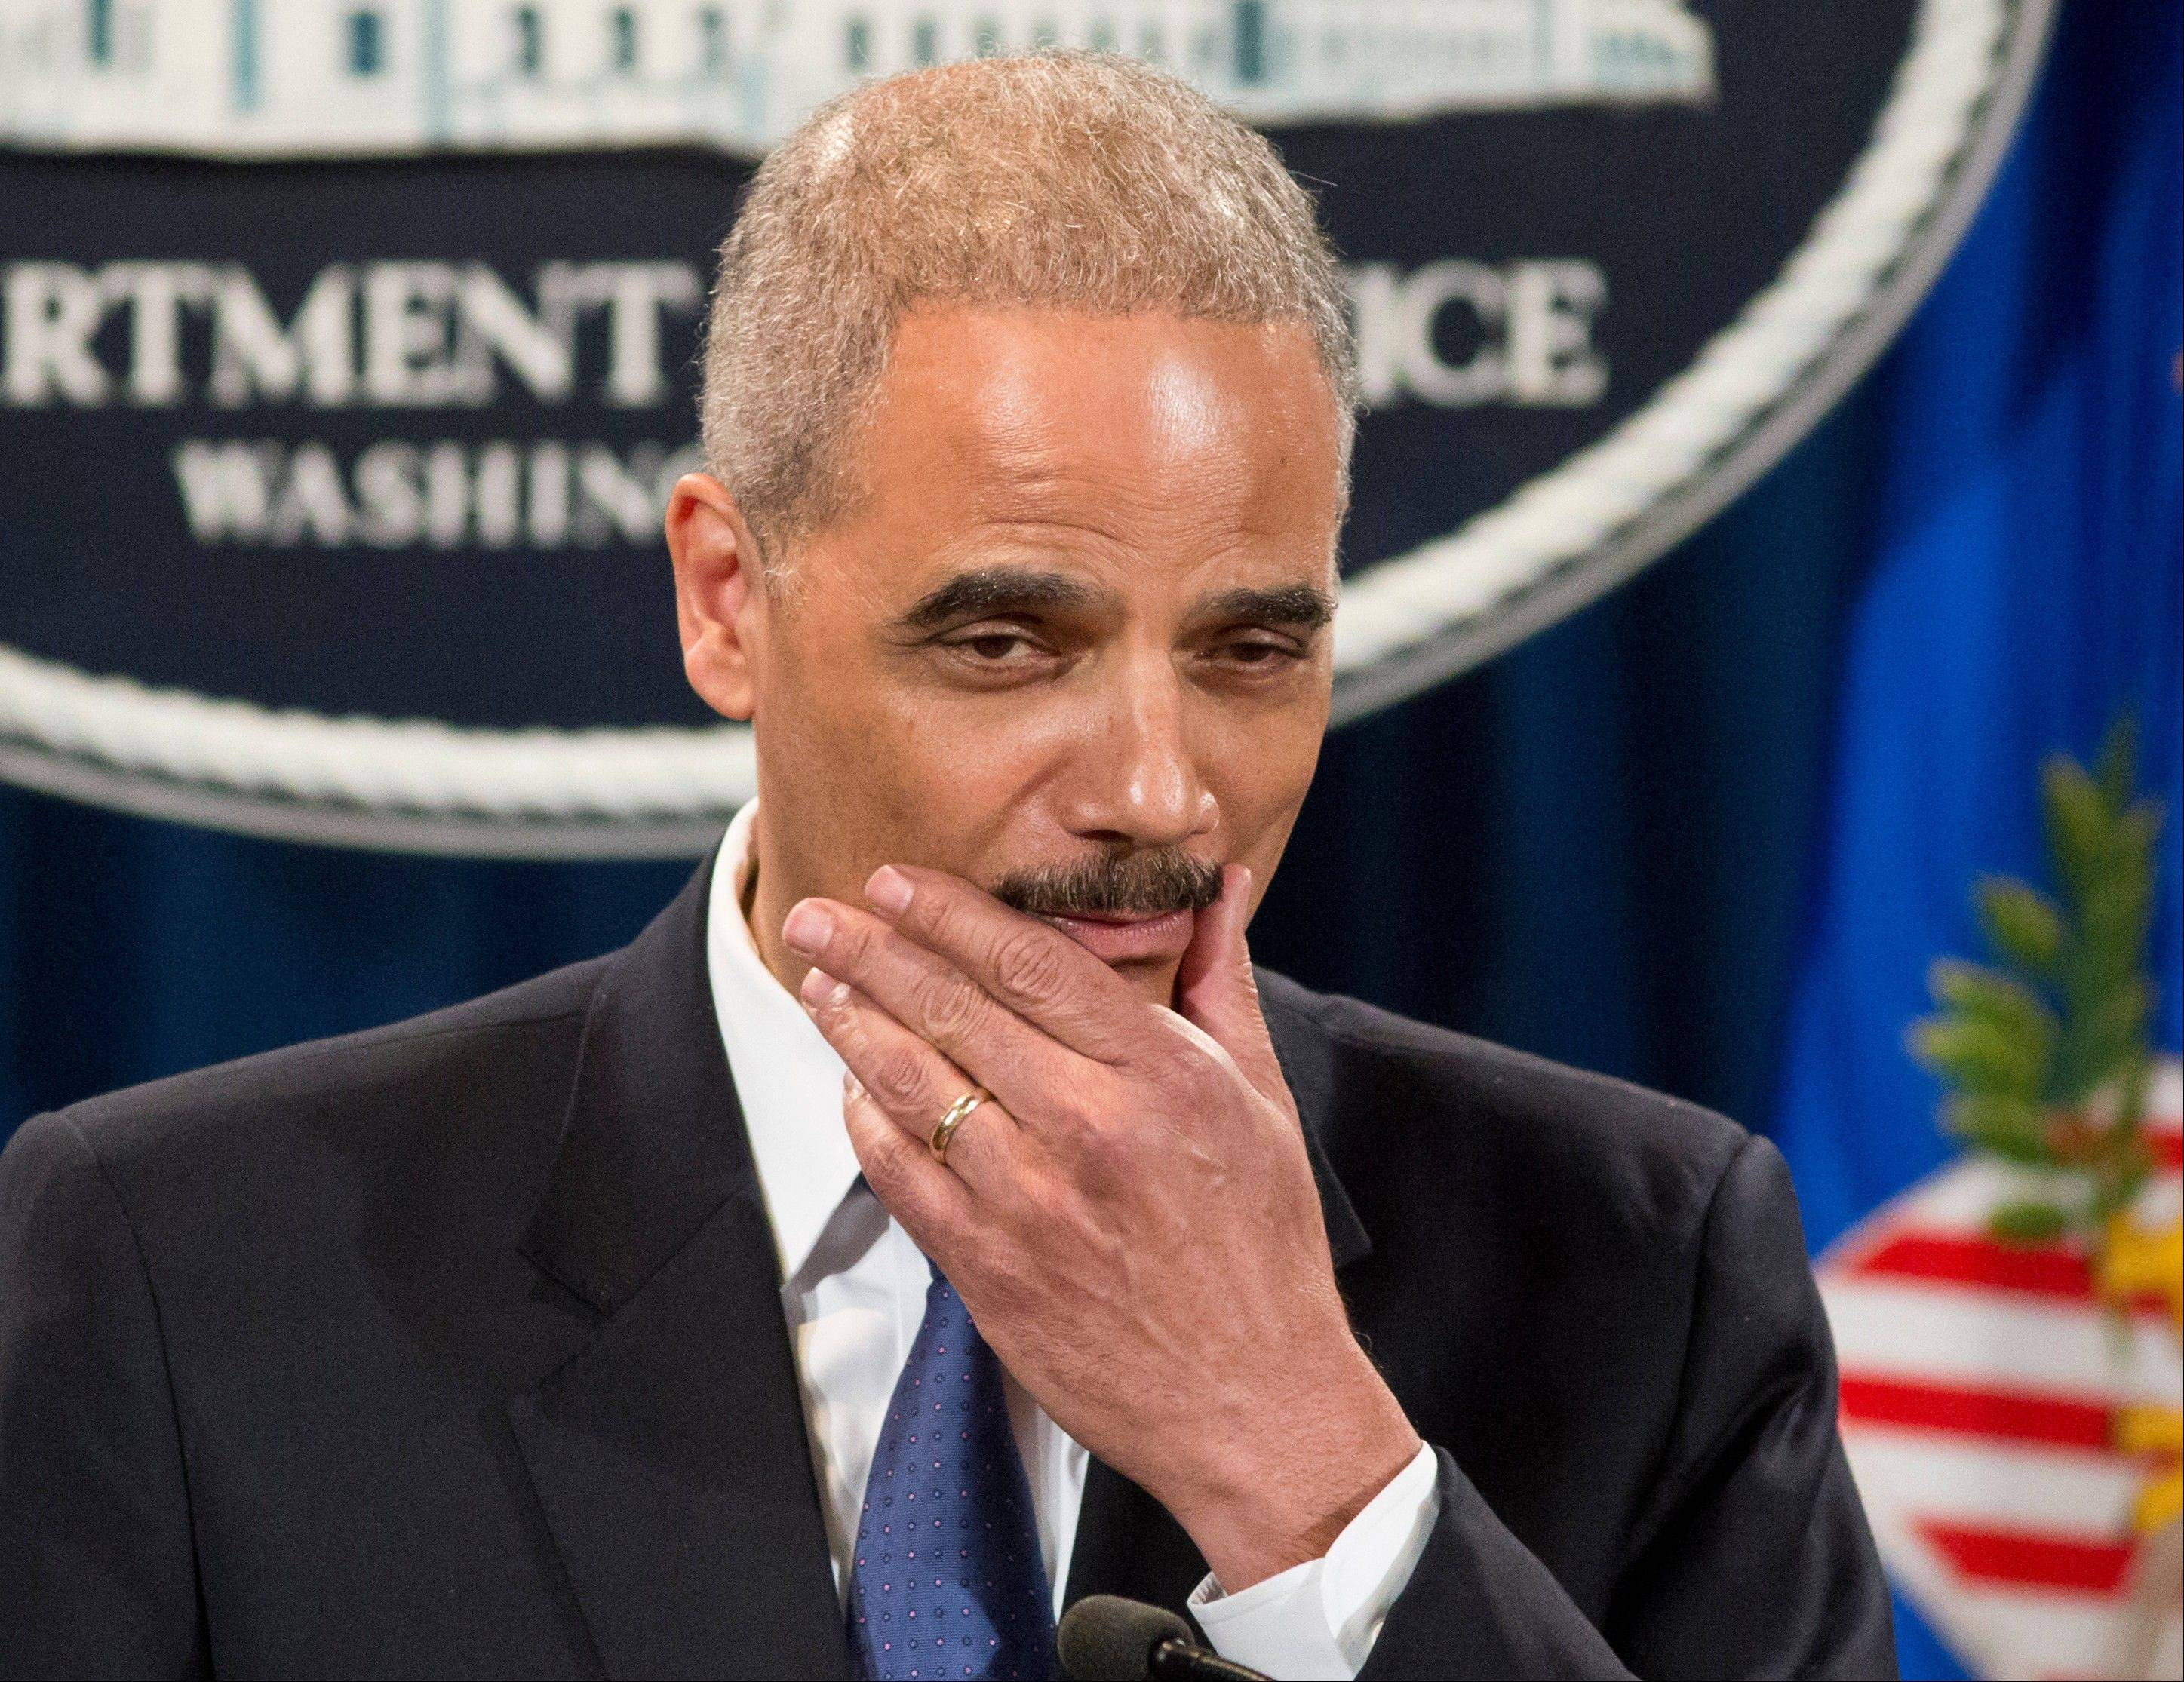 Attorney General Eric Holder pauses during a news conference at the Justice Department in Washington Tuesday. Holder said he�s ordered a Justice Department investigation into the Internal Revenue Service�s targeting of conservative groups for extra tax scrutiny.